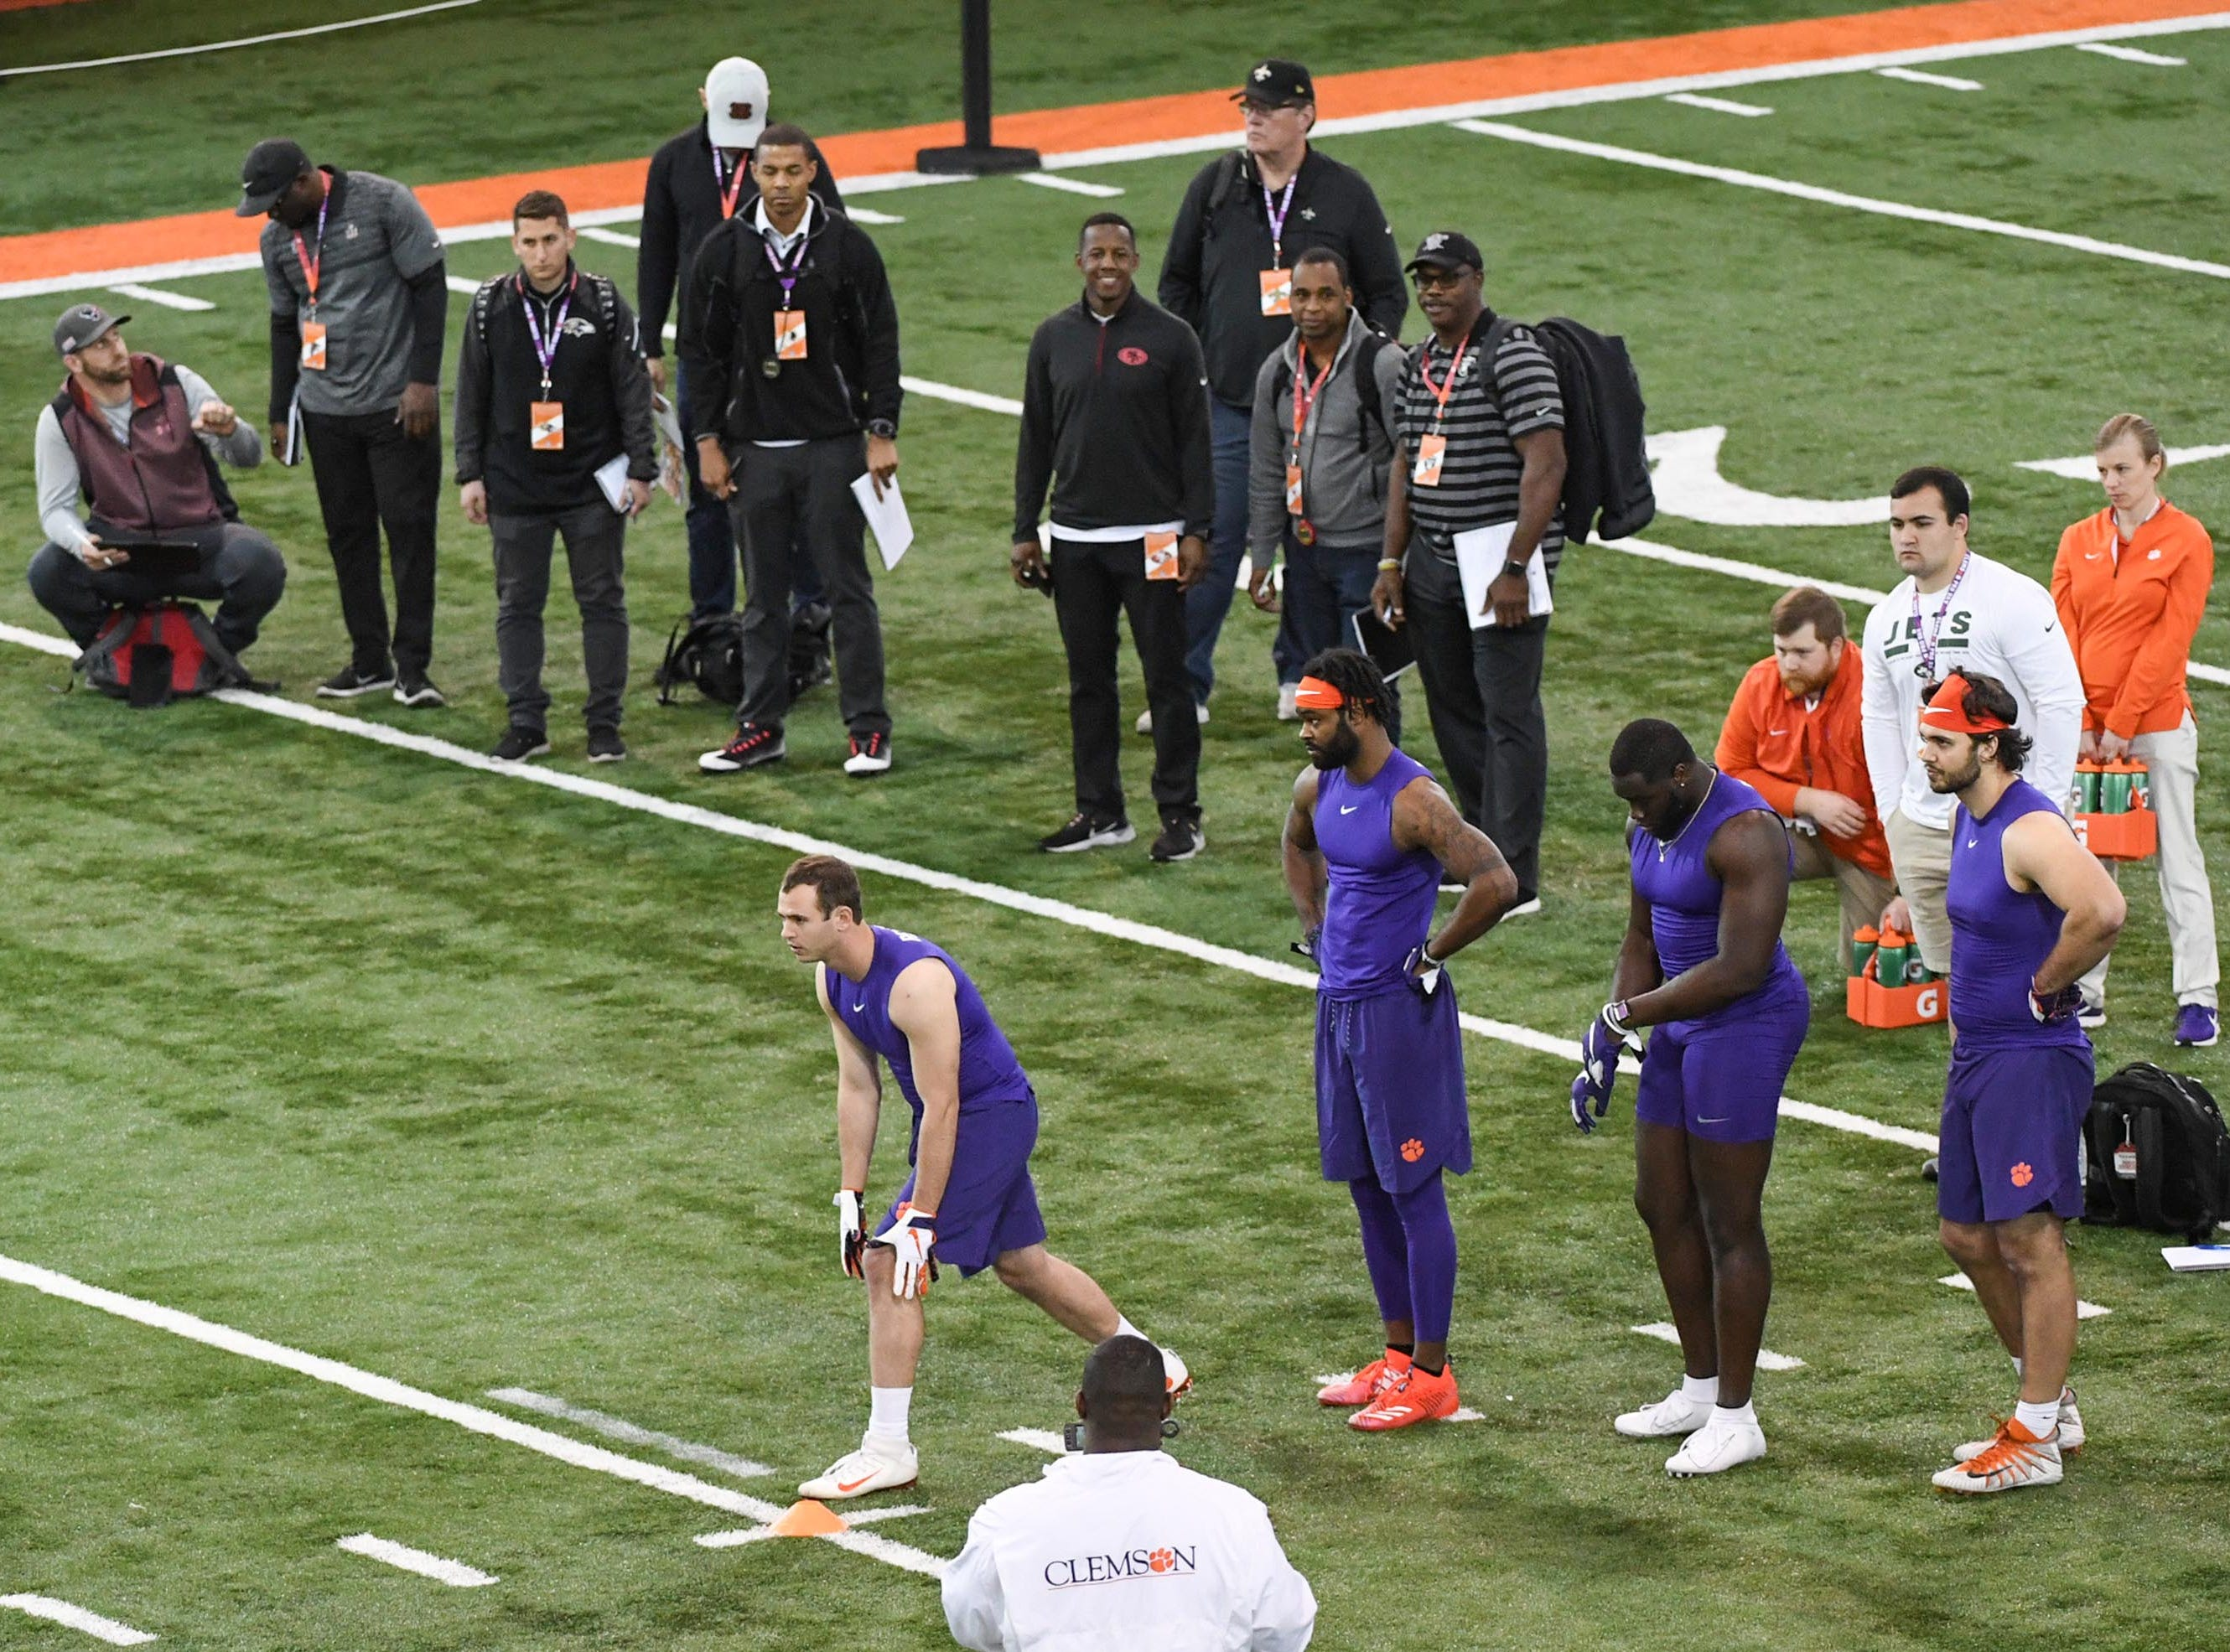 Wide receiver Hunter Renfrow lines up for a route during Clemson pro day at the Poe Indoor Facility in Clemson Thursday, March 14, 2019.